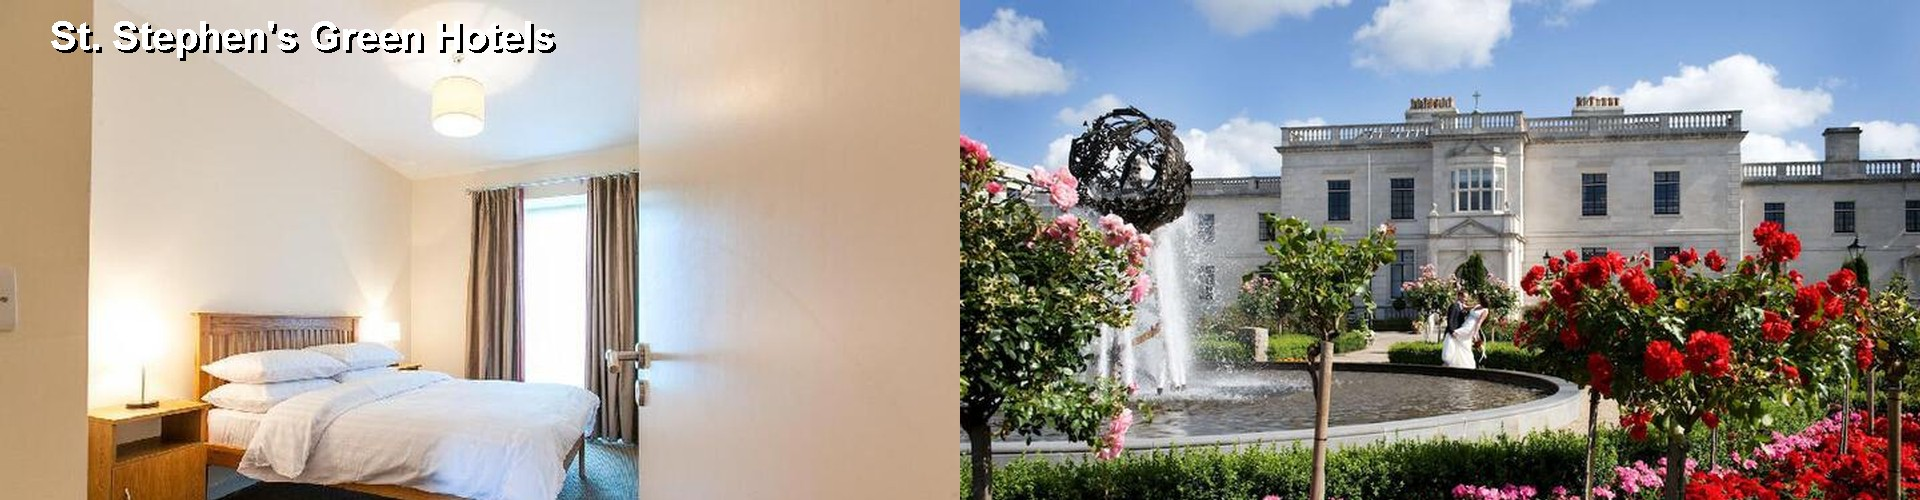 5 Best Hotels near St. Stephen's Green